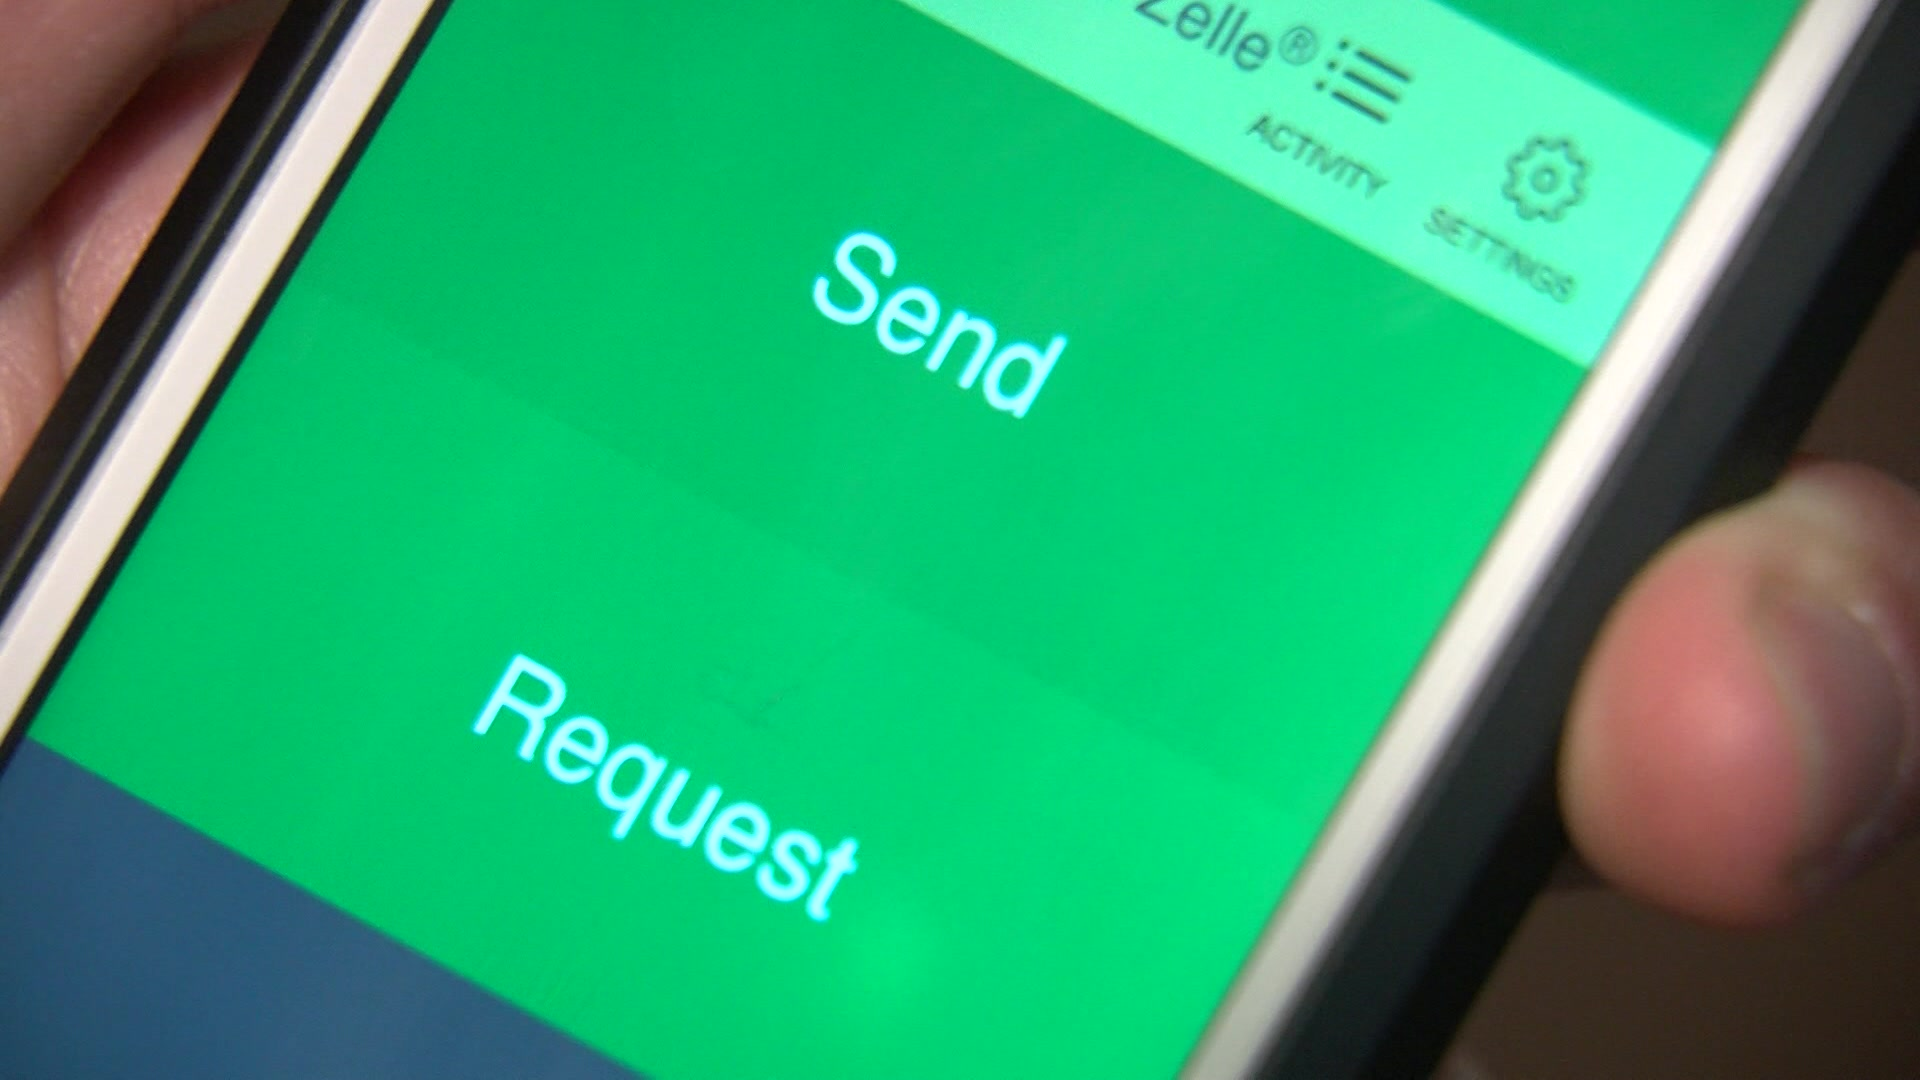 Payment App Warning: How to protect yourself when using apps